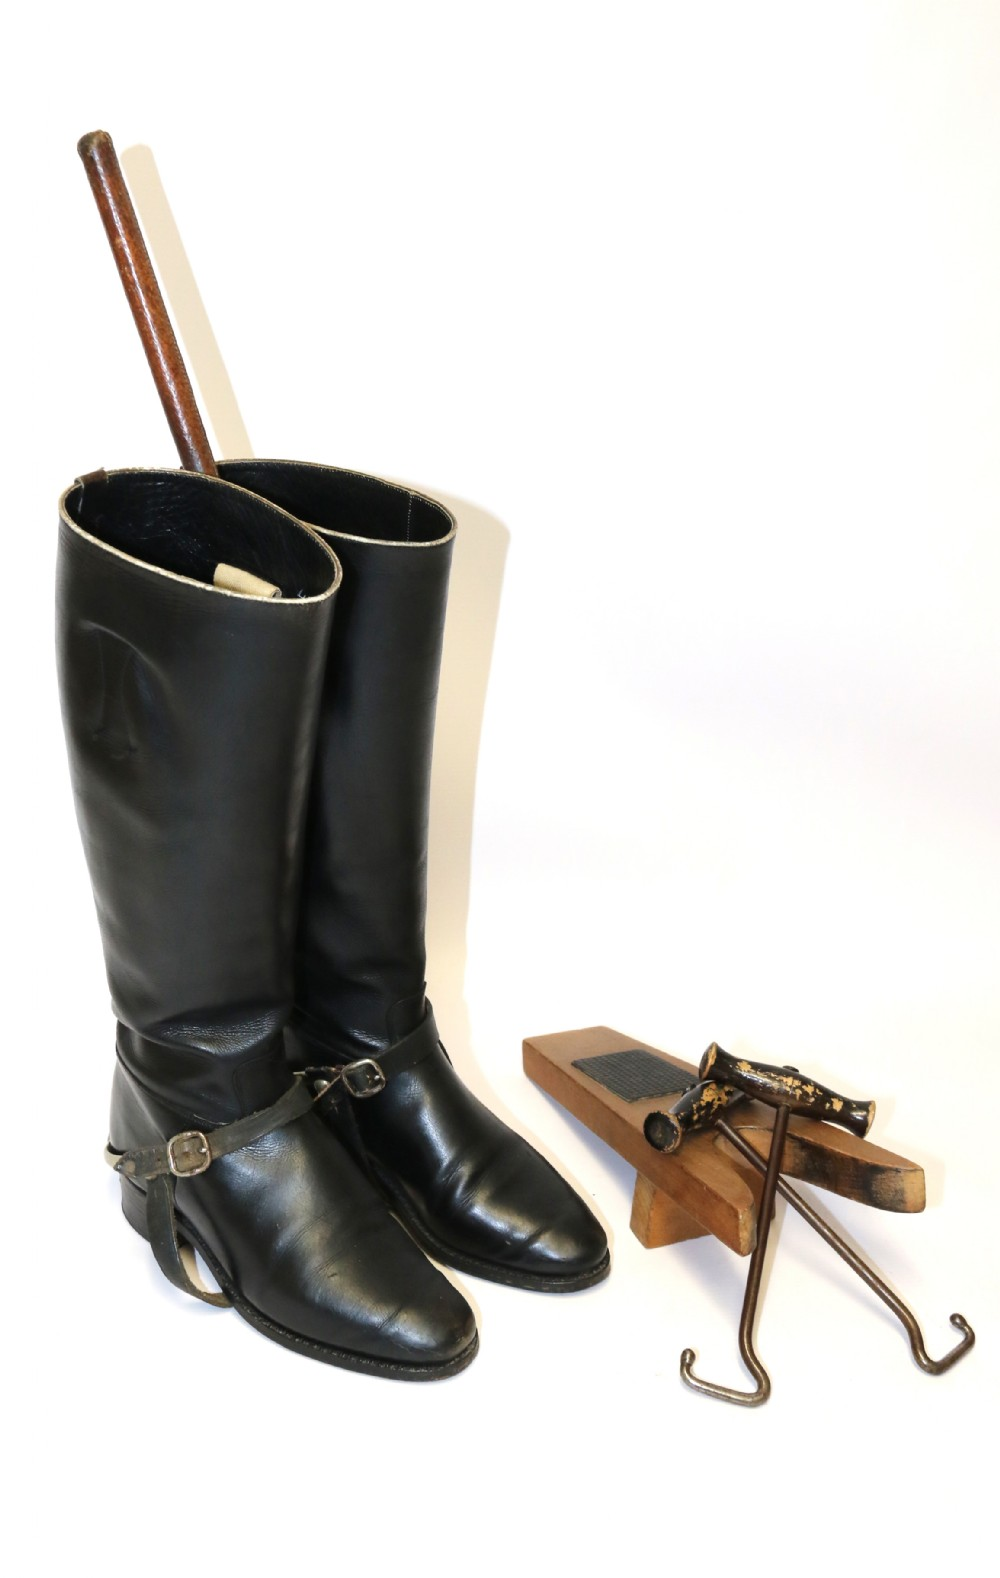 a pair of leather riding boots early20th century